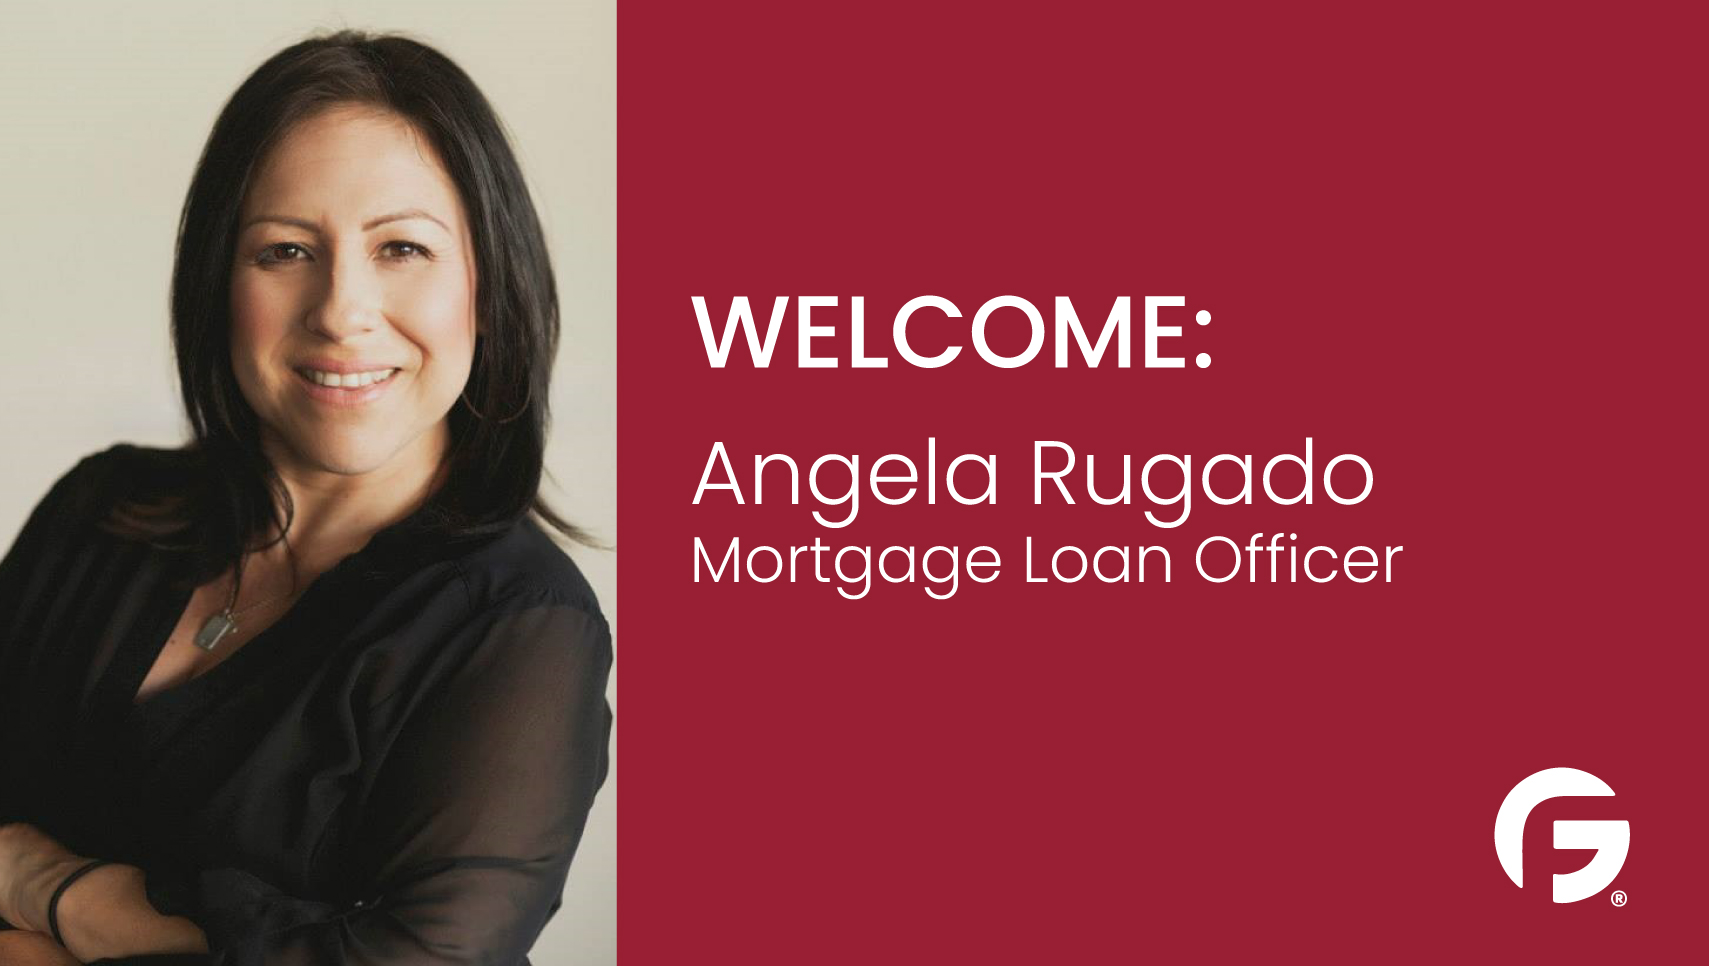 Angela Rugado,Loan Officer, serving the state of California